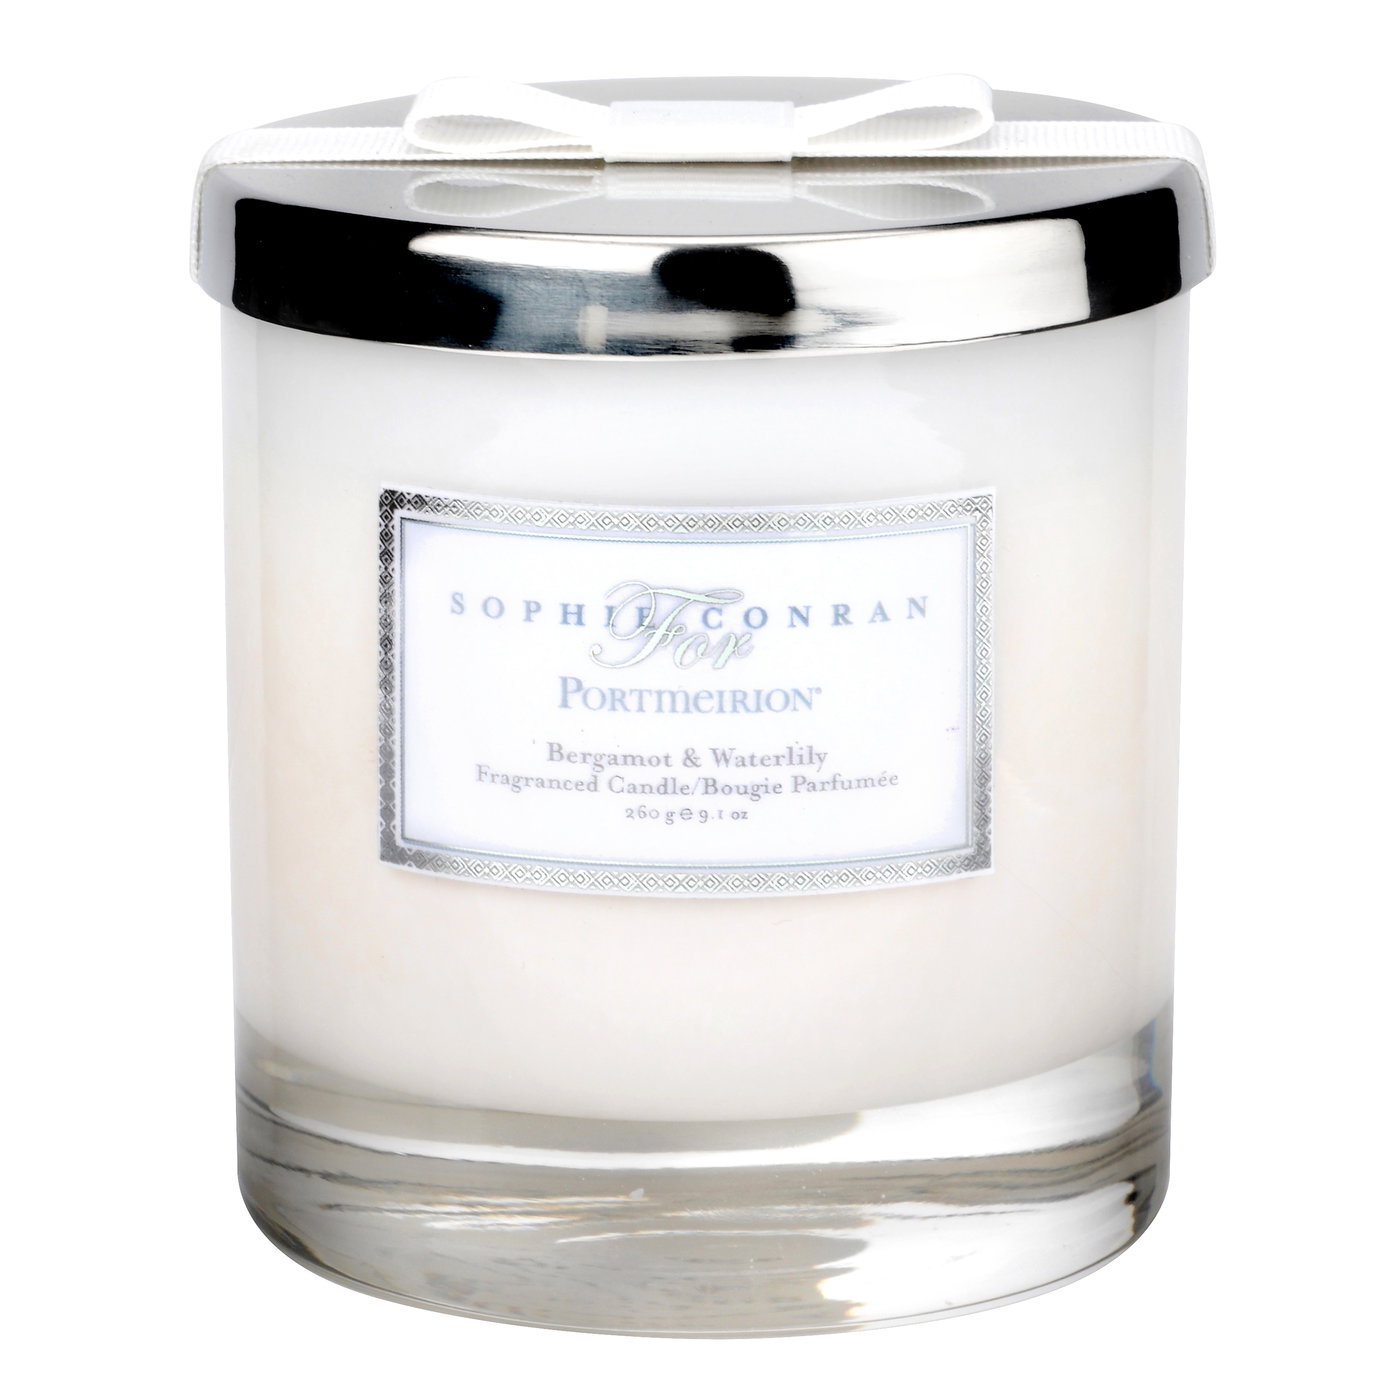 Sophie Conran Candles and Home Fragrance